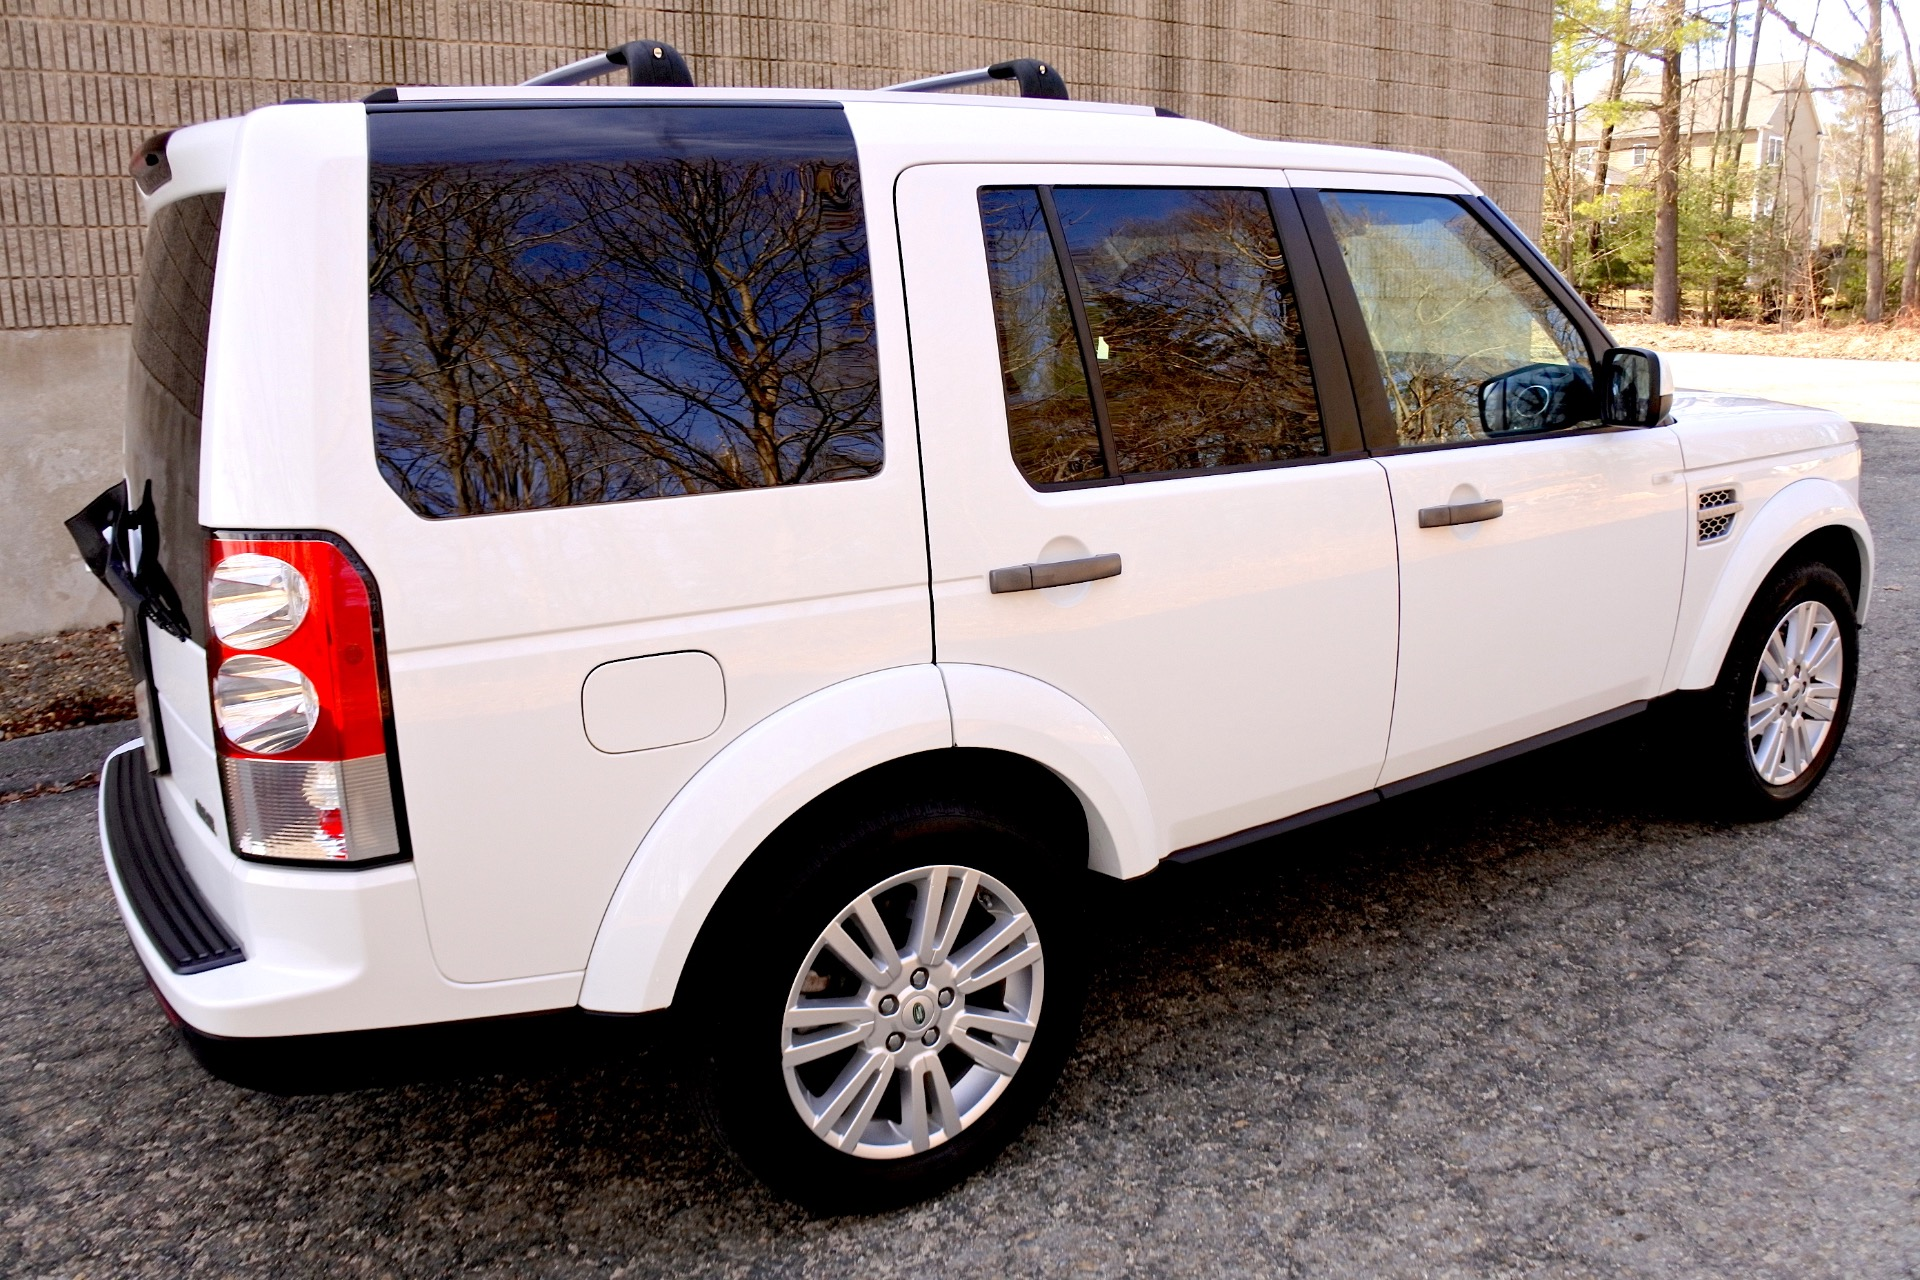 Used 2011 Land Rover Lr4 4WD 4dr V8 HSE Used 2011 Land Rover Lr4 4WD 4dr V8 HSE for sale  at Metro West Motorcars LLC in Shrewsbury MA 5